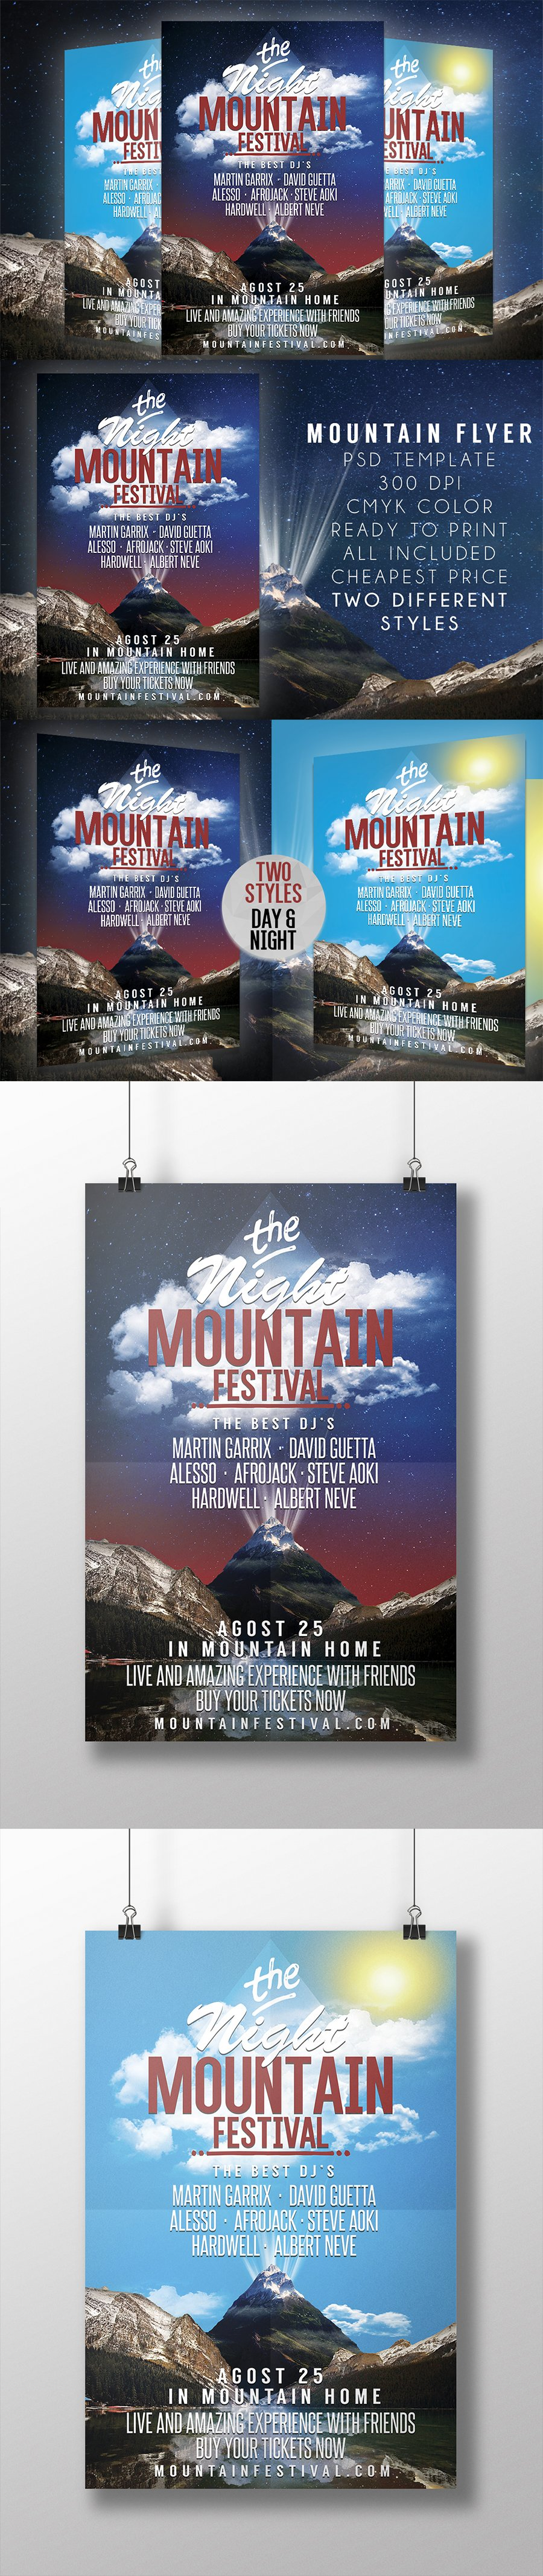 Mountain Festival Flyer Template PSD